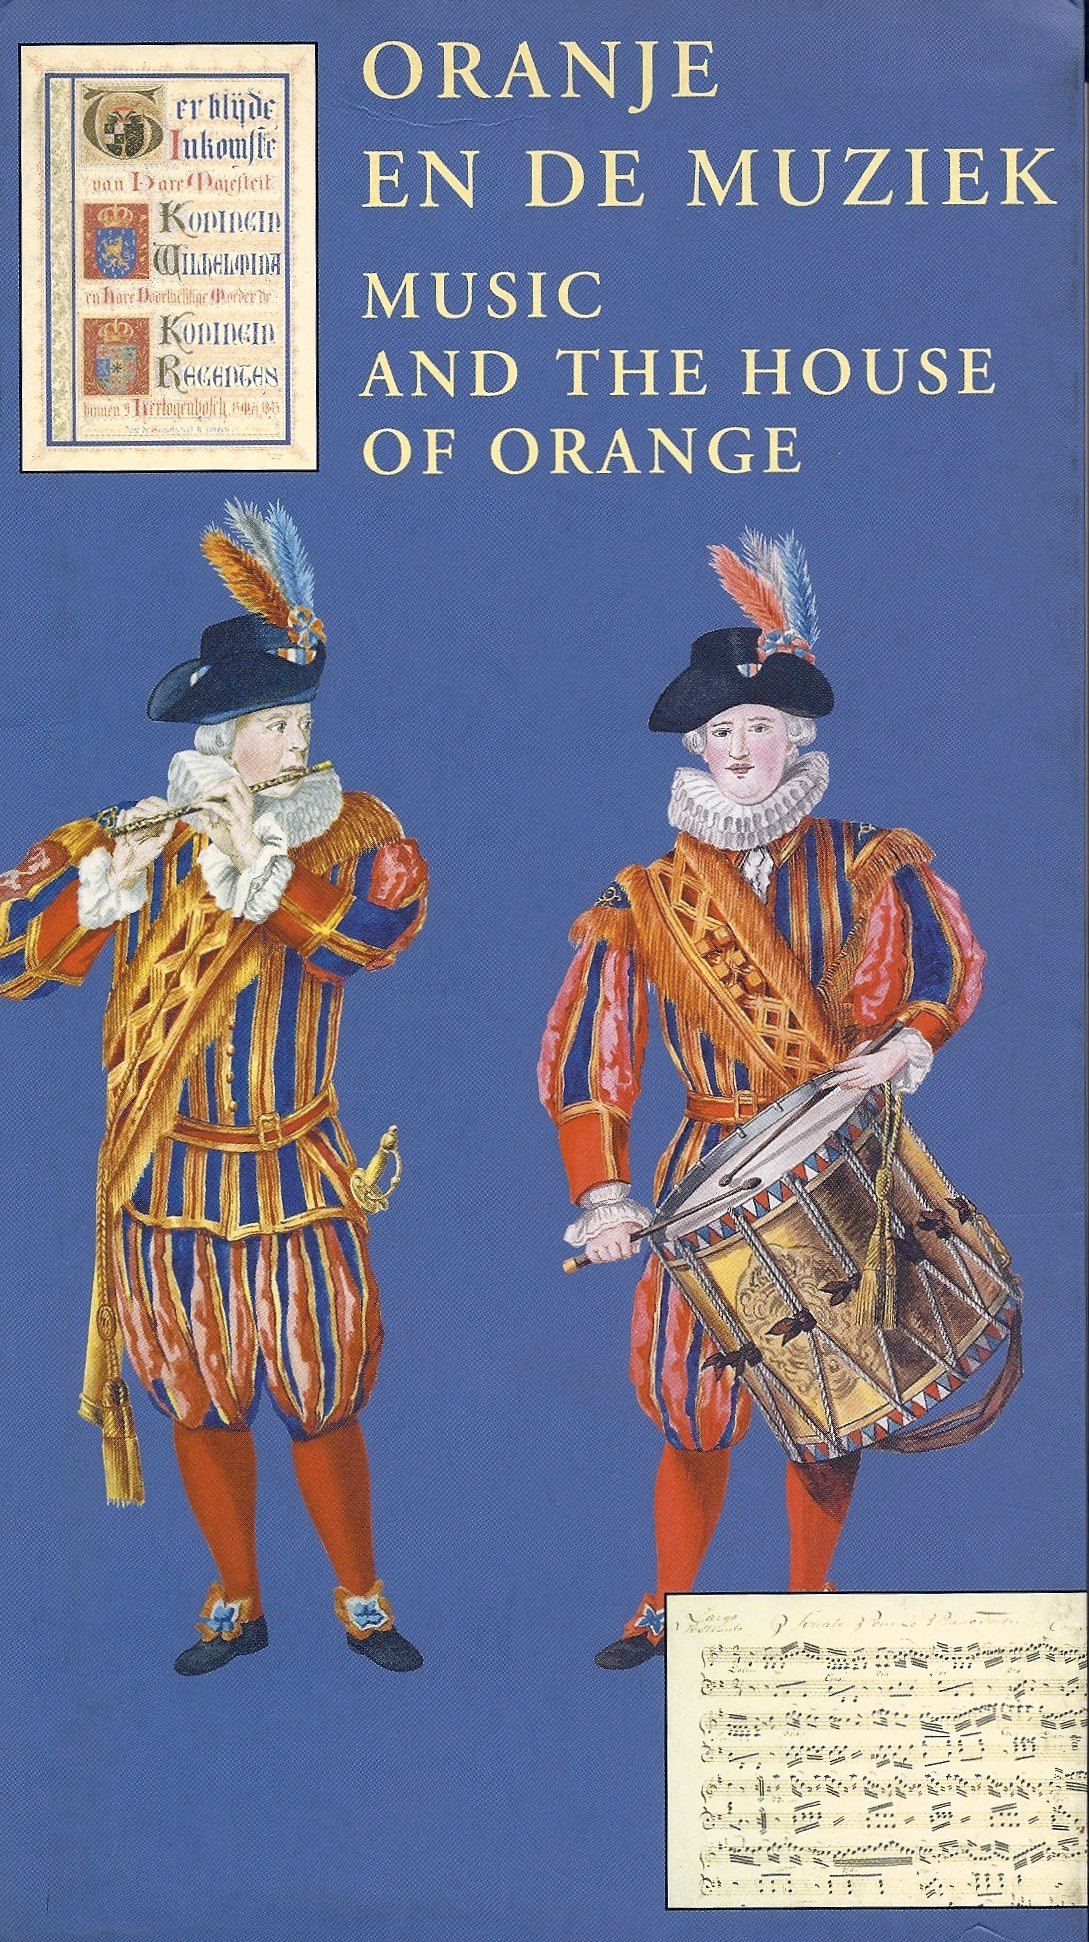 Oranje en de Muziek/Music and the House of Orange